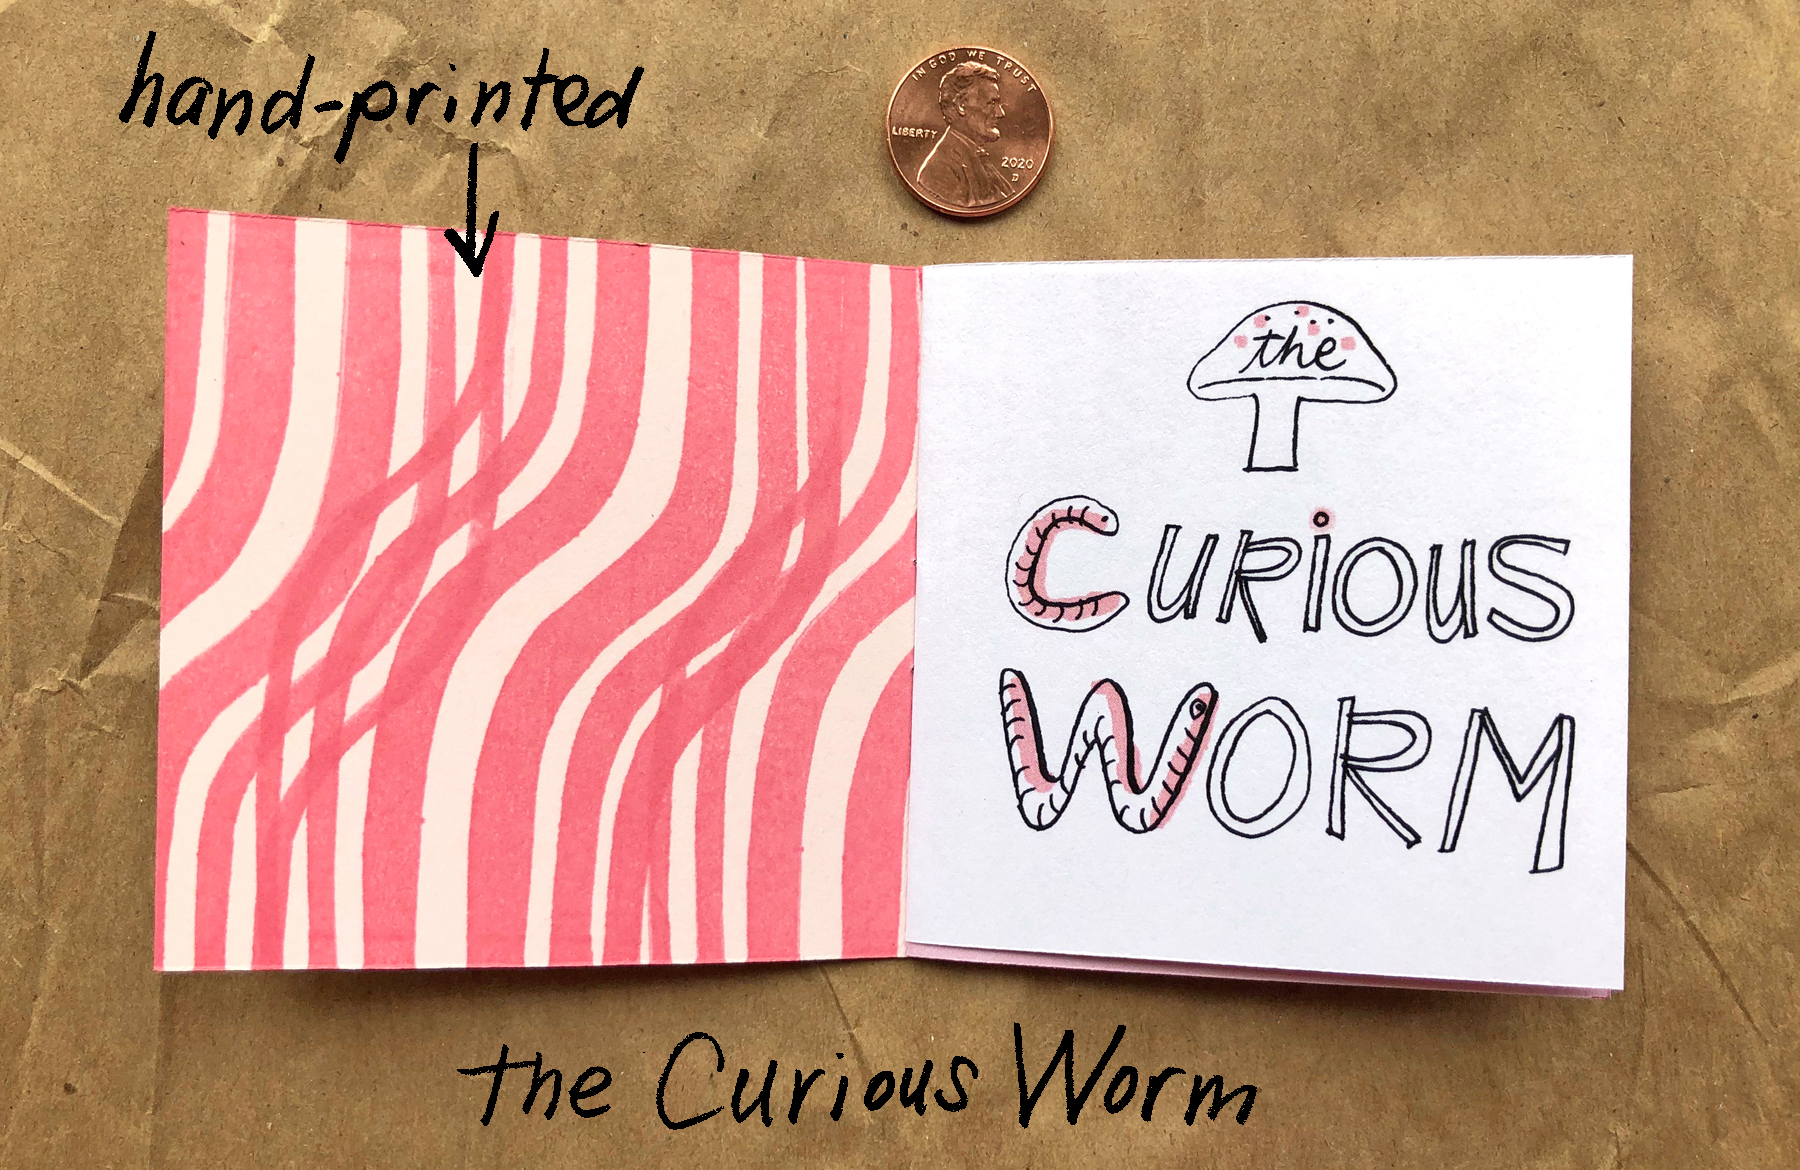 The Curious Worm inside front cover